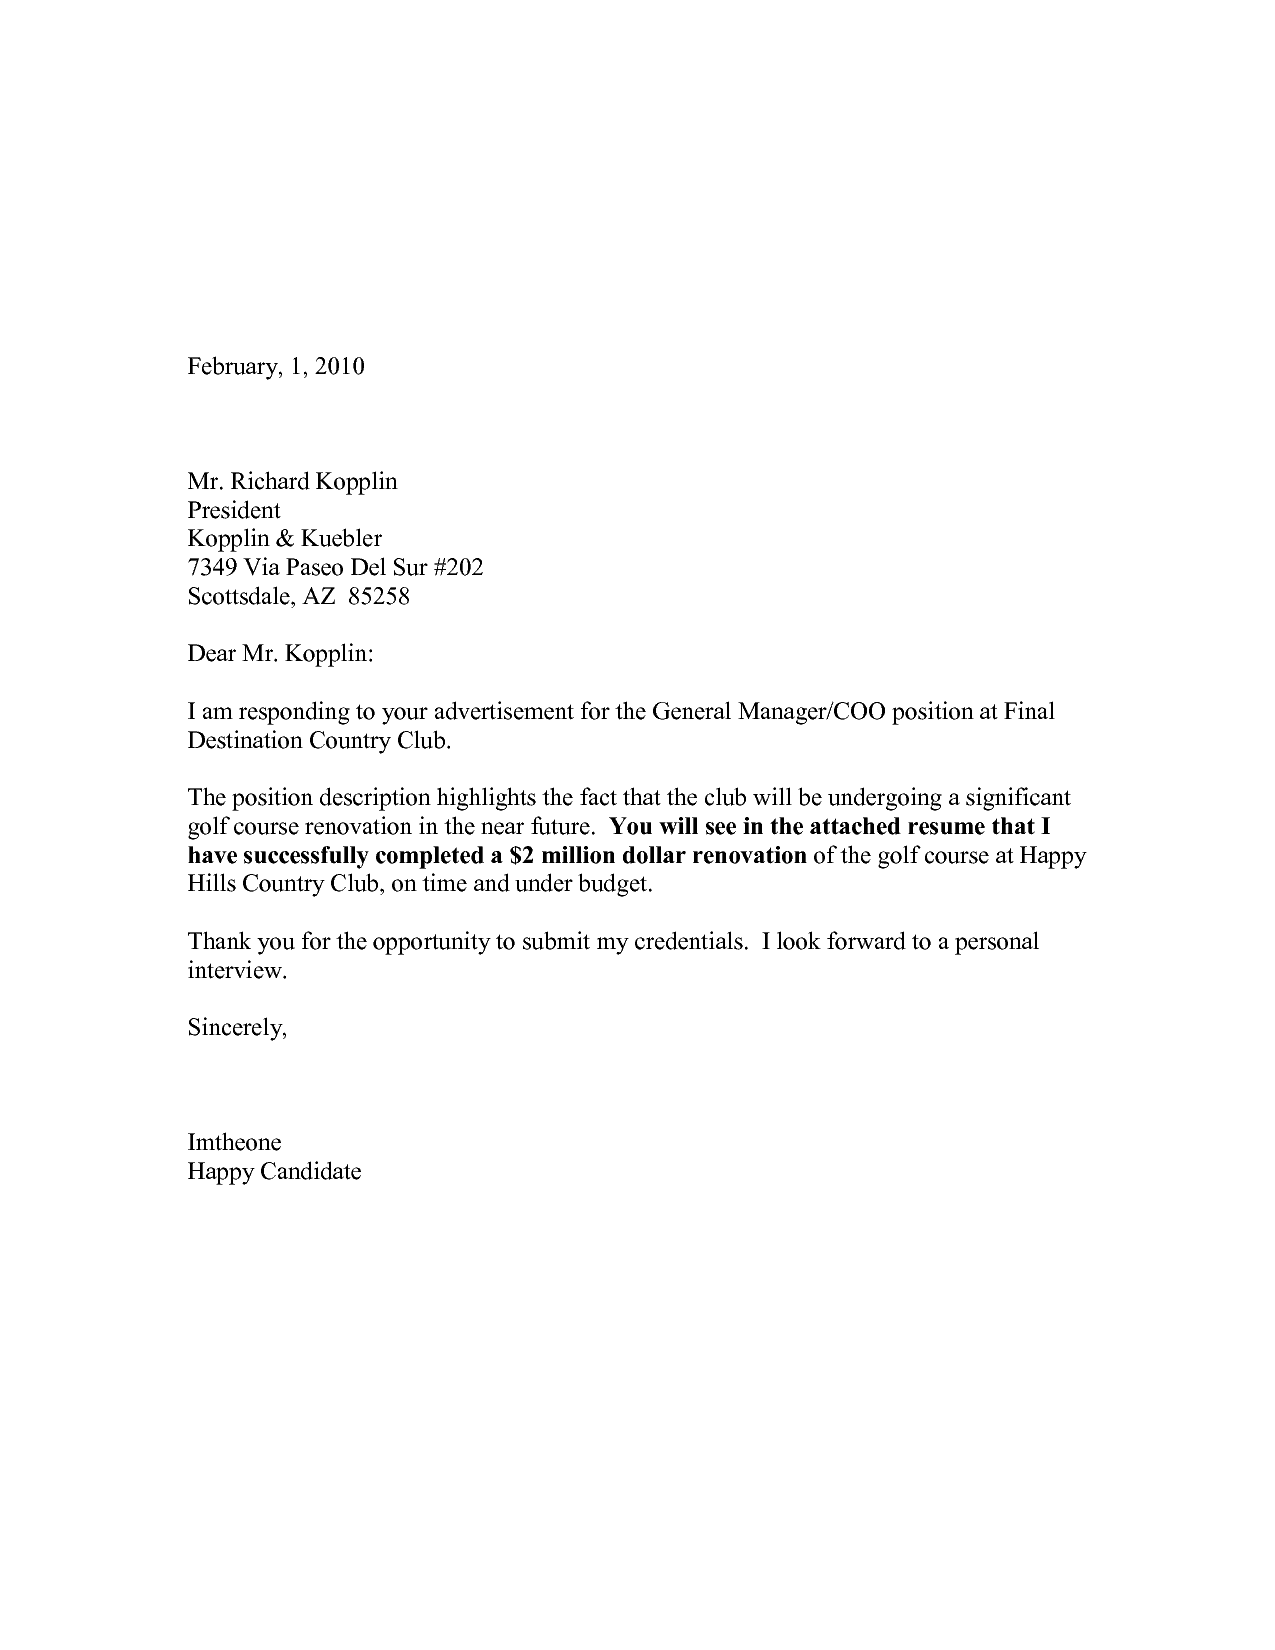 cover letters for resume basic cover letter for a resume 7134